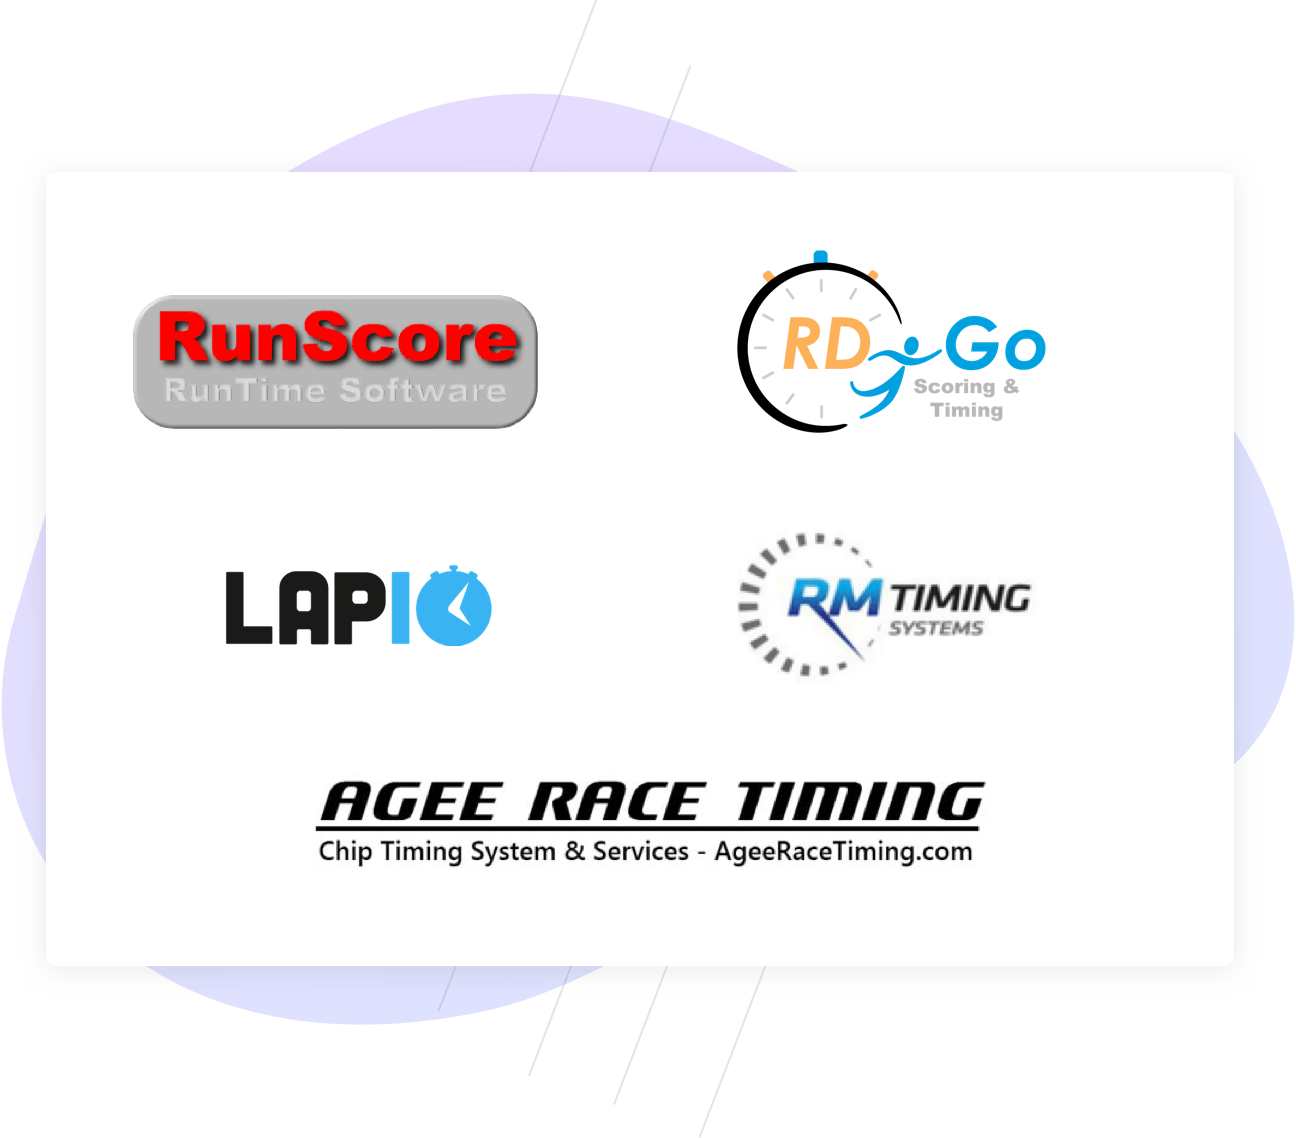 Timing integration logos: RunScore, RD Go, Lap 10, RM timing, and Agee Race Timing